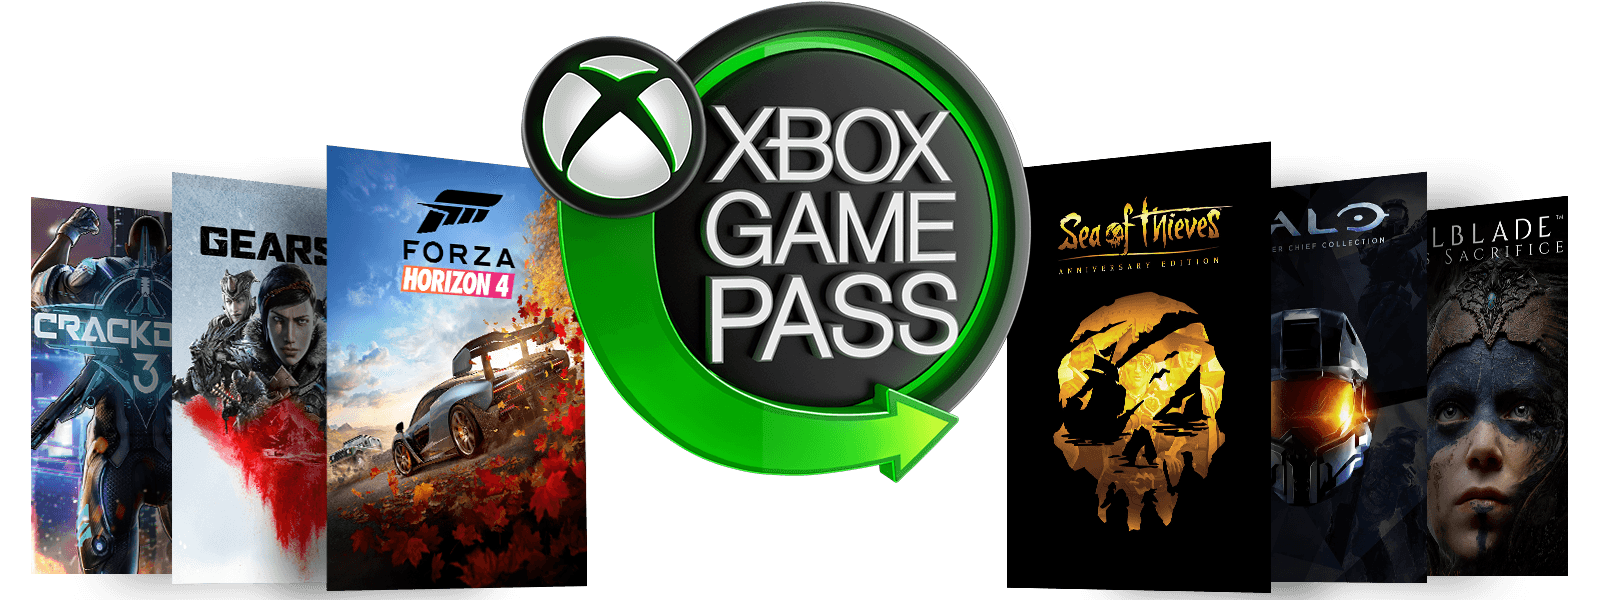 Immagini delle confezioni di Sea of Thieves, PlayerUnknown's Battlegrounds, Forza Horizon 4, Crackdown 3, Halo The Master Chief Collection e Hellblade: Senua's Sacrifice attorno al logo con luce al neon verde di Xbox Game Pass